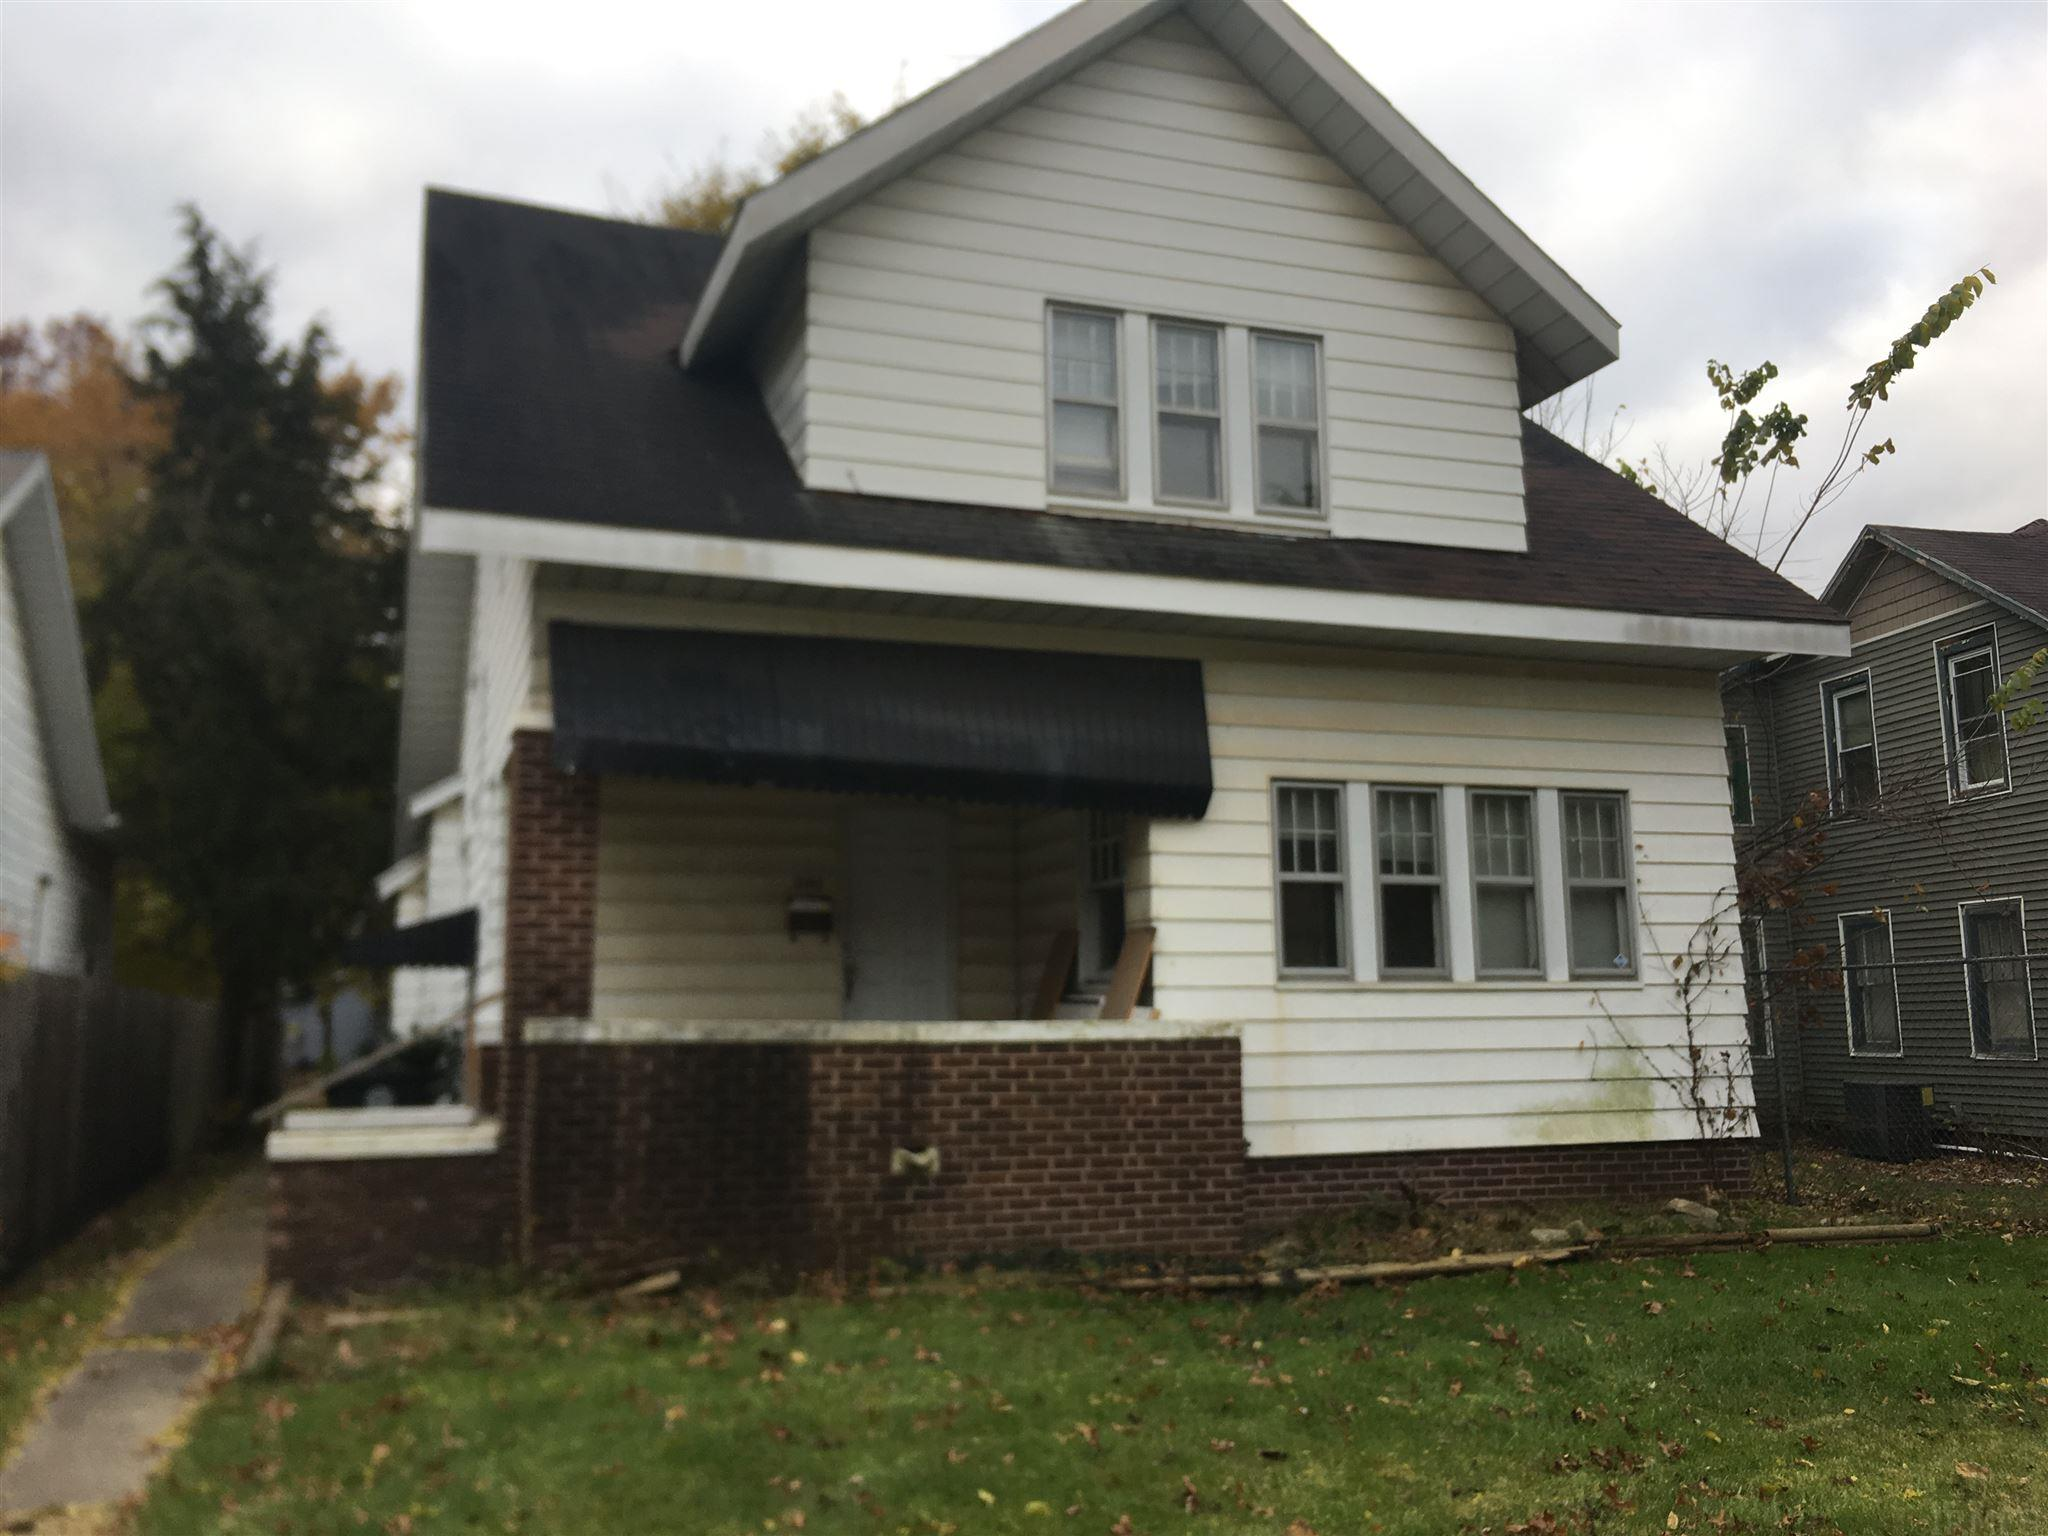 2102 Lincolnway West South Bend, IN 46628